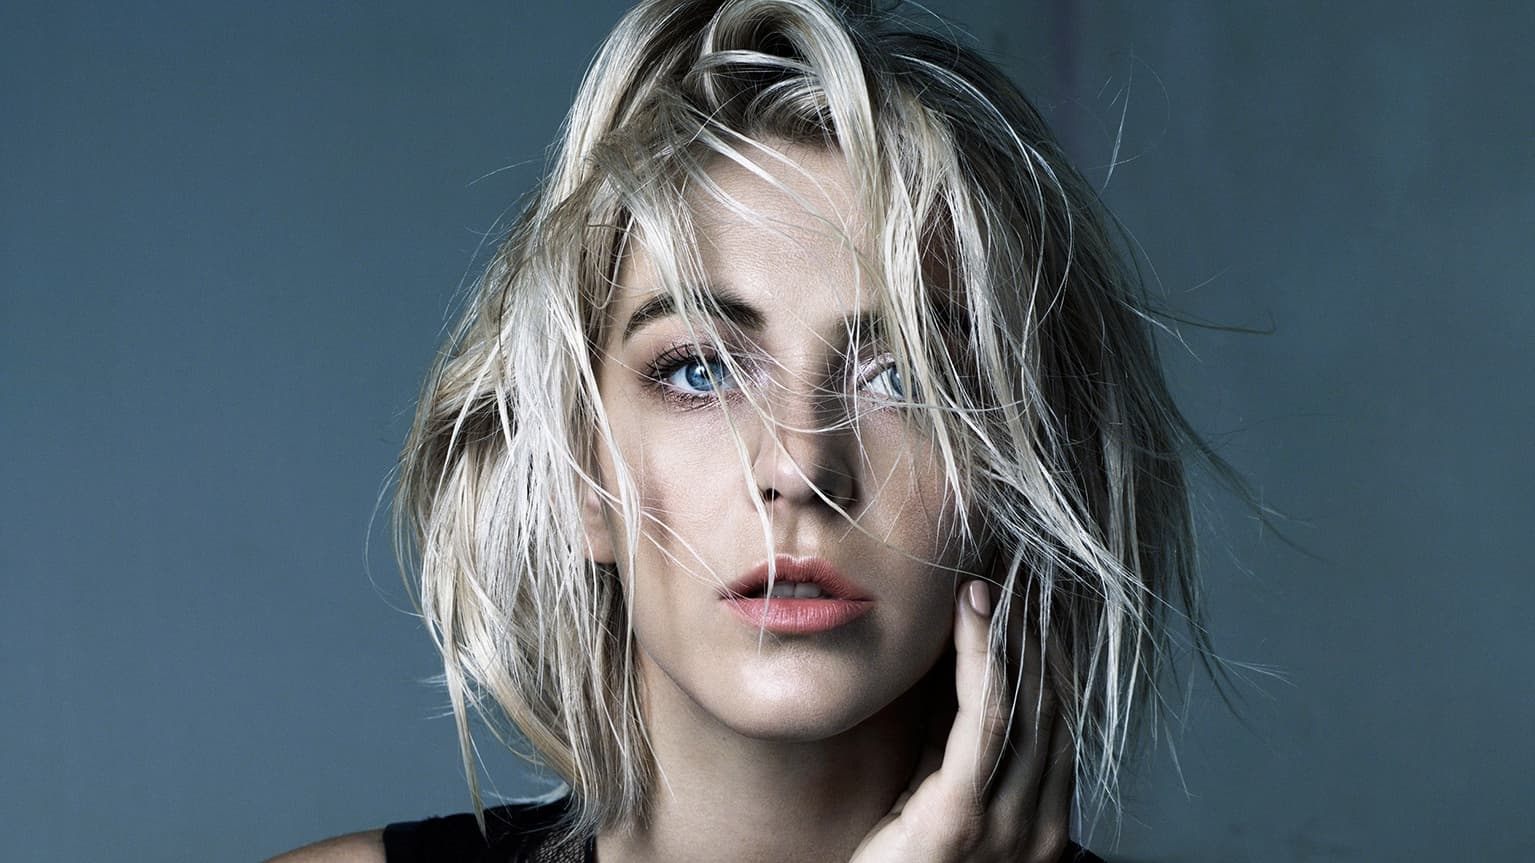 Iphone 5 Anime Wallpaper Julianne Hough Wallpapers 23 High Quality Images